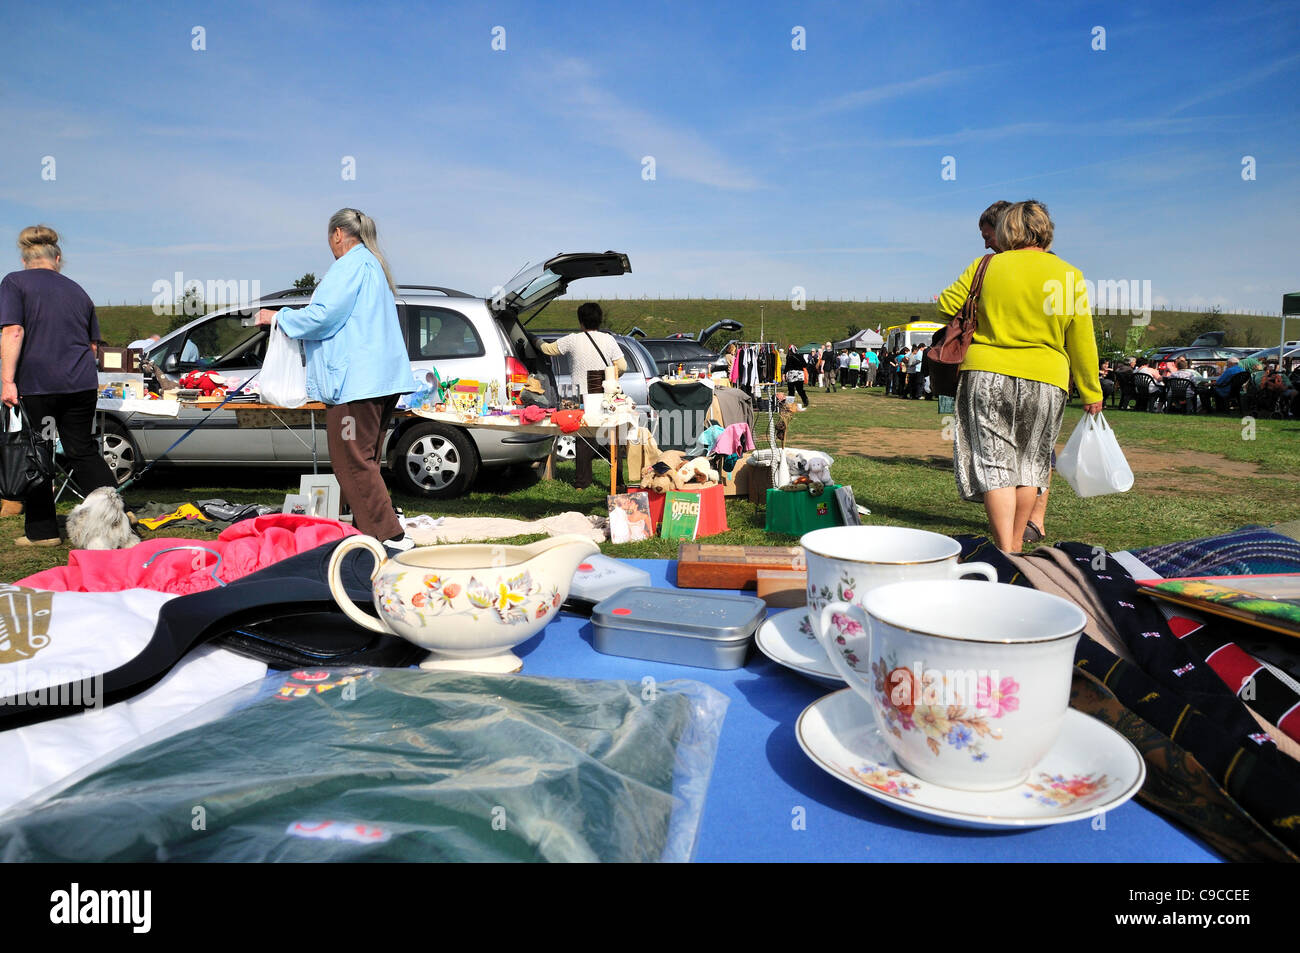 Car boot sale market with stall in foreground - Stock Image